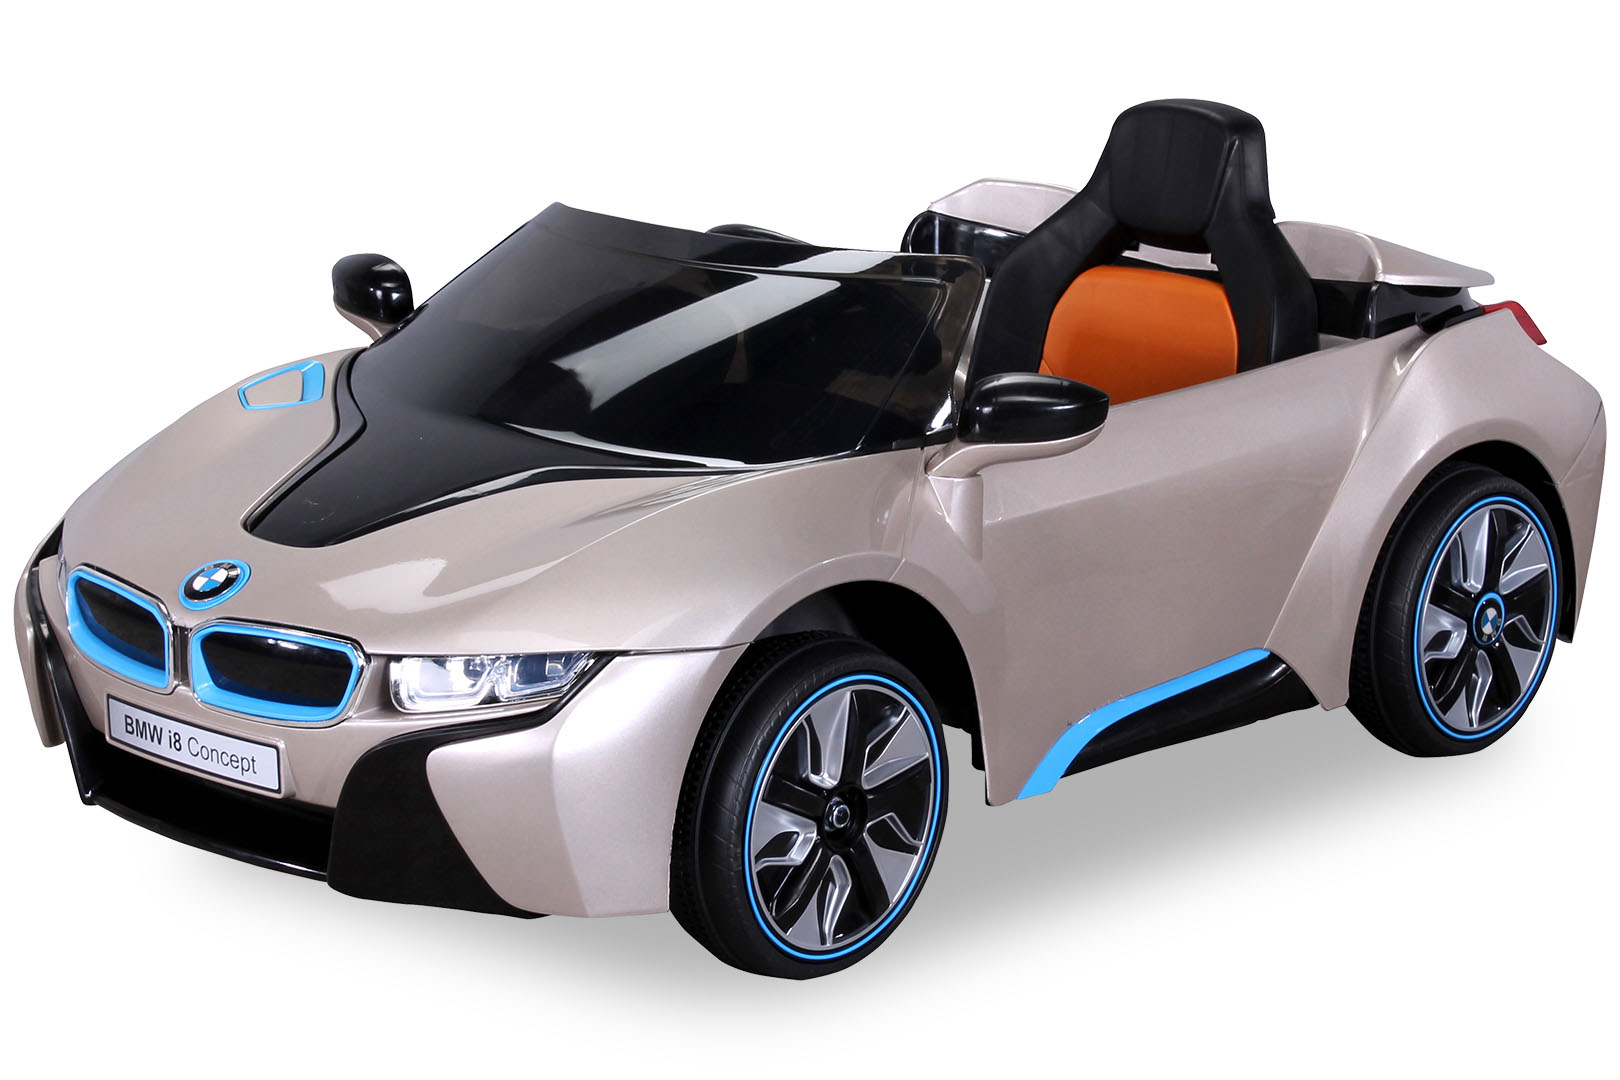 kinder elektro auto bmw i8 kinderauto elektrofahrzeug kinderfahrzeug elektroauto ebay. Black Bedroom Furniture Sets. Home Design Ideas